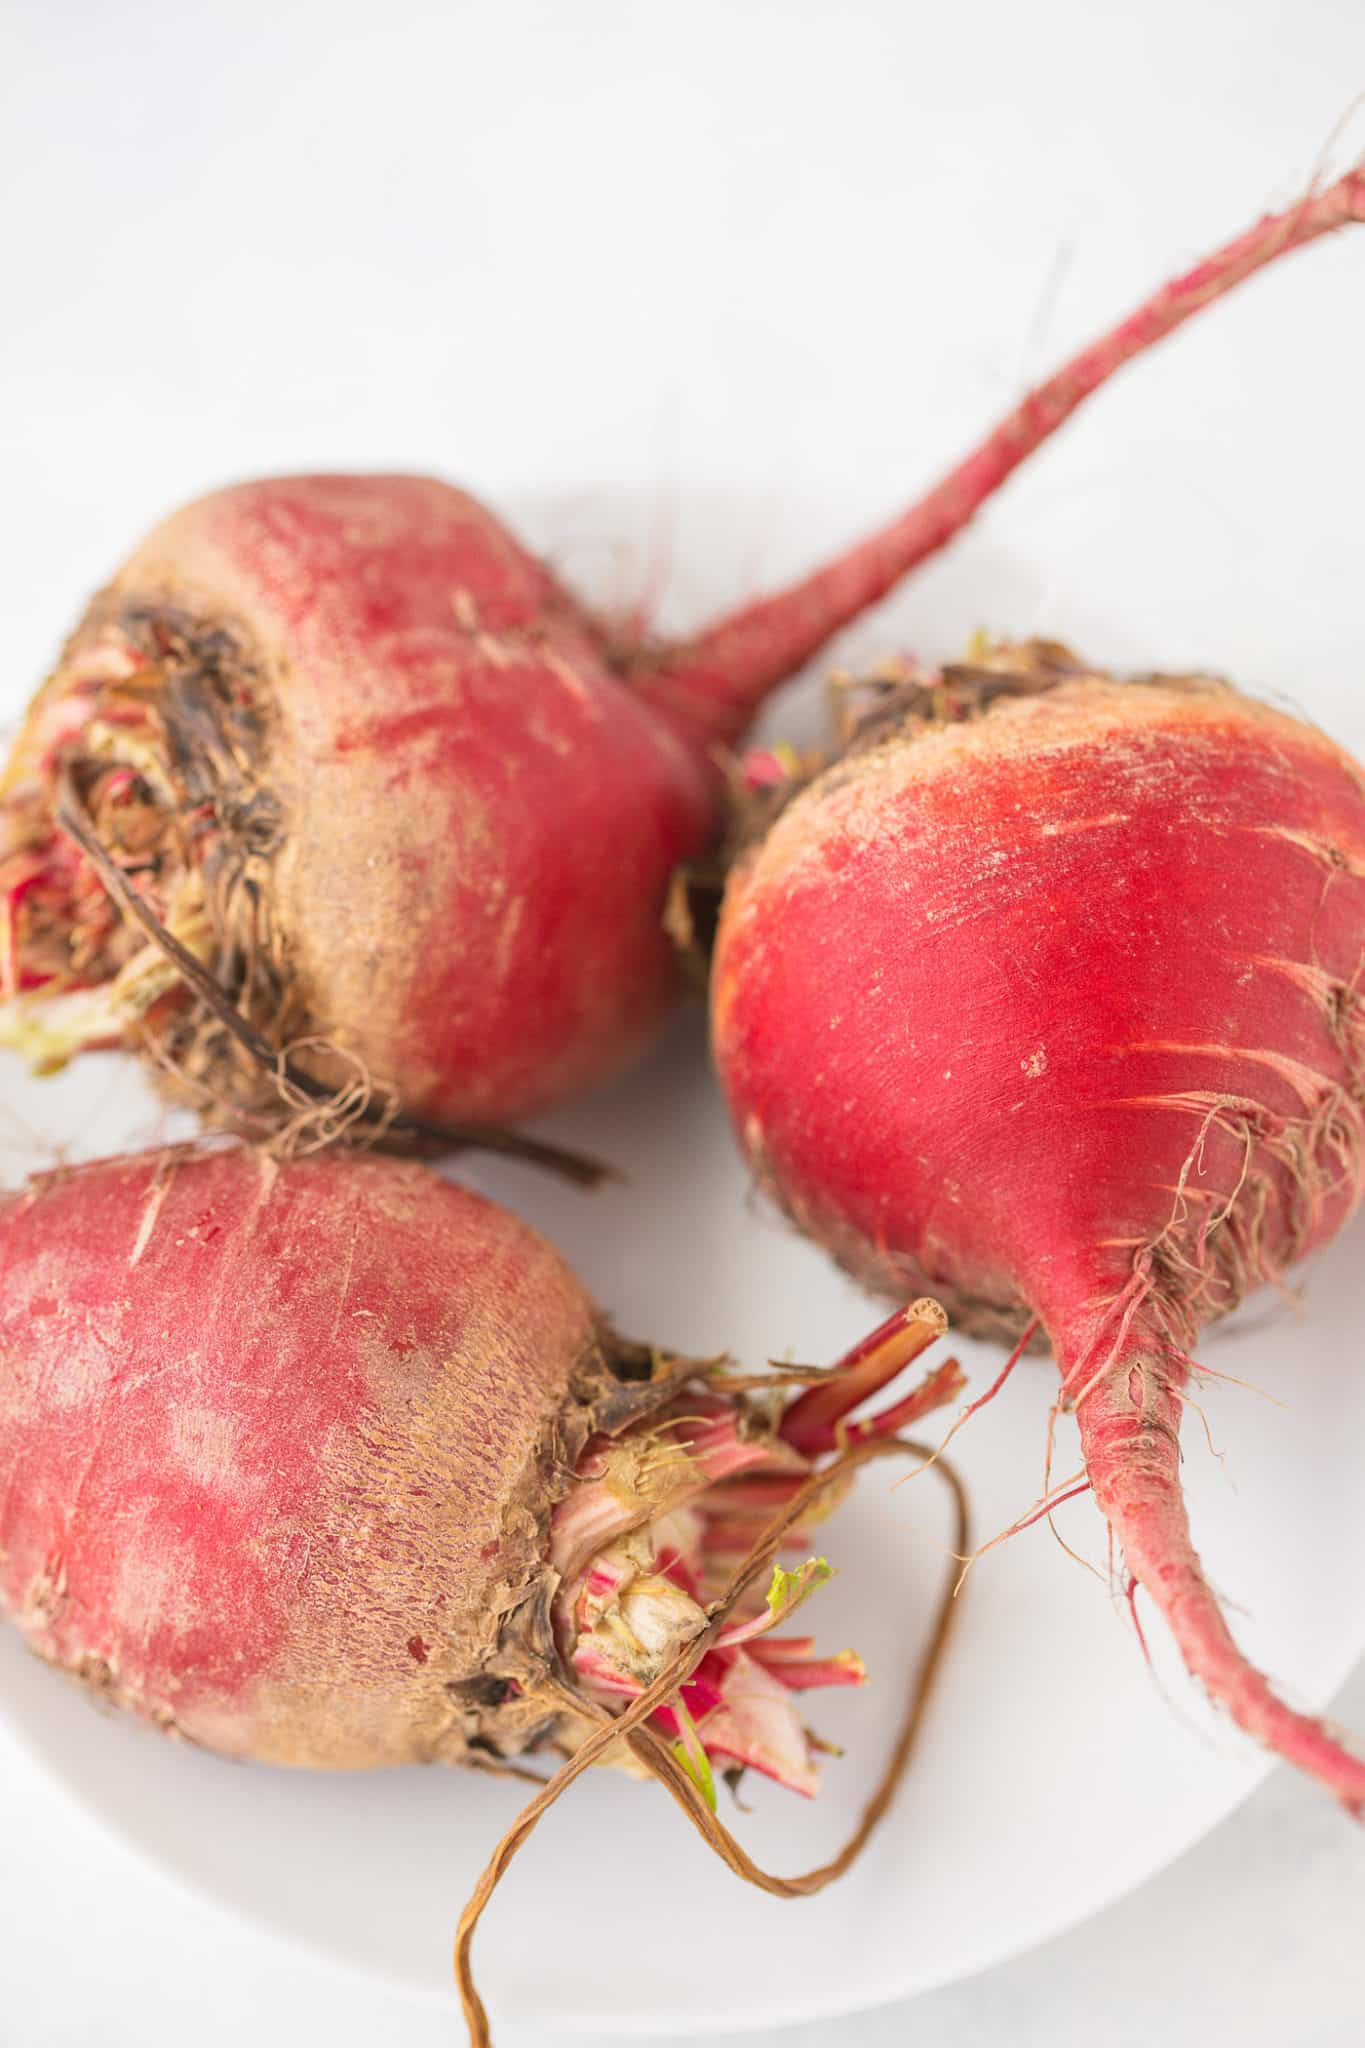 Chiogga beets ready to be cooked